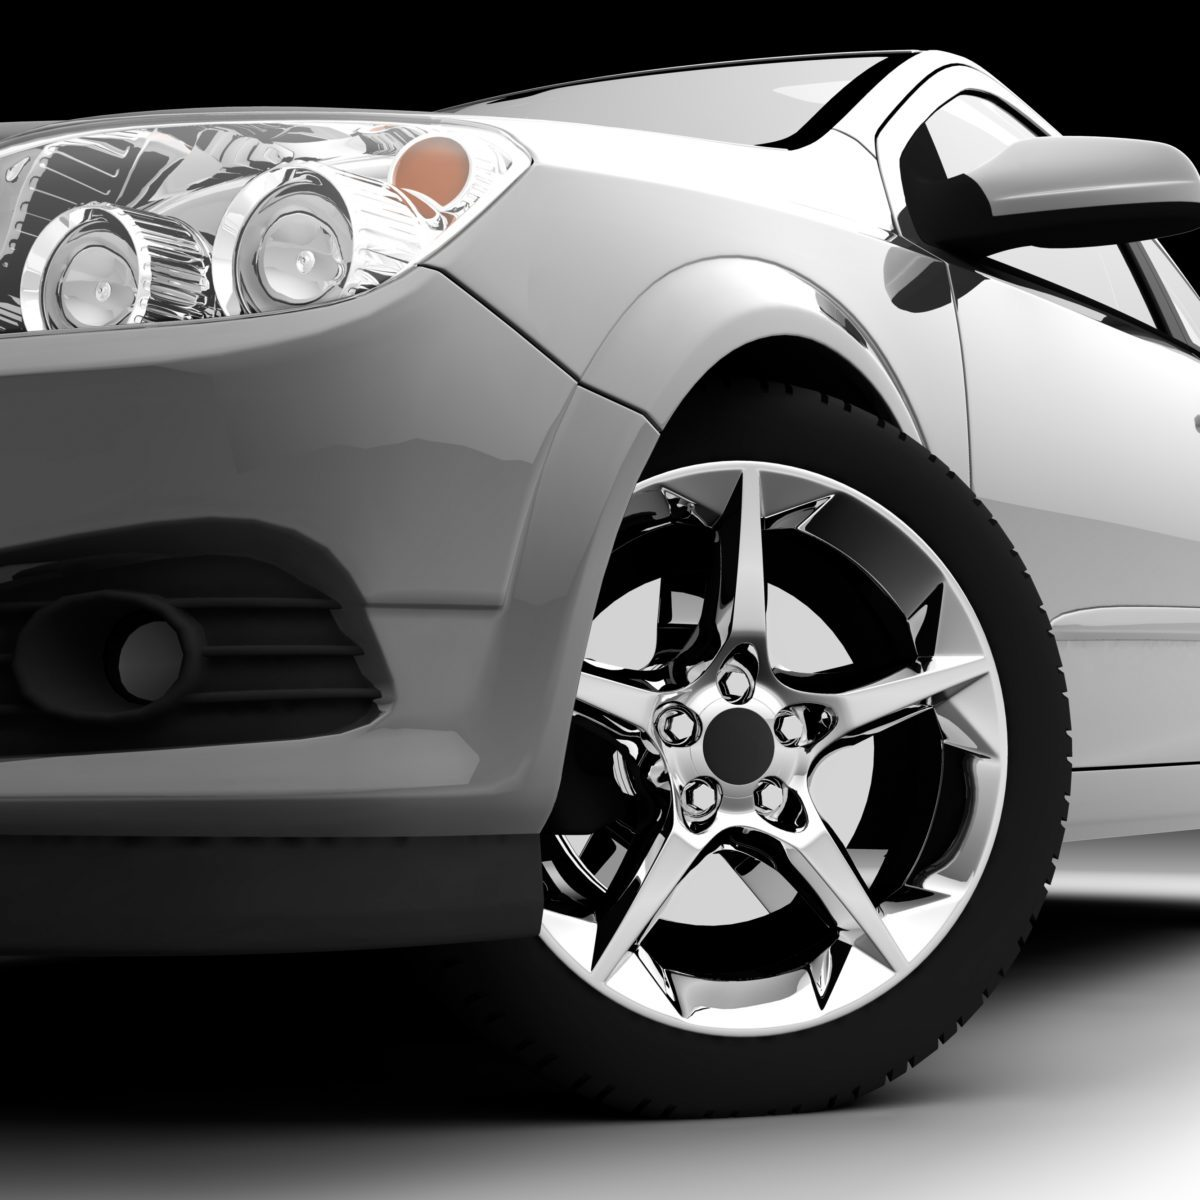 Refinishing Car Wheels: Step-by-Step Instructions